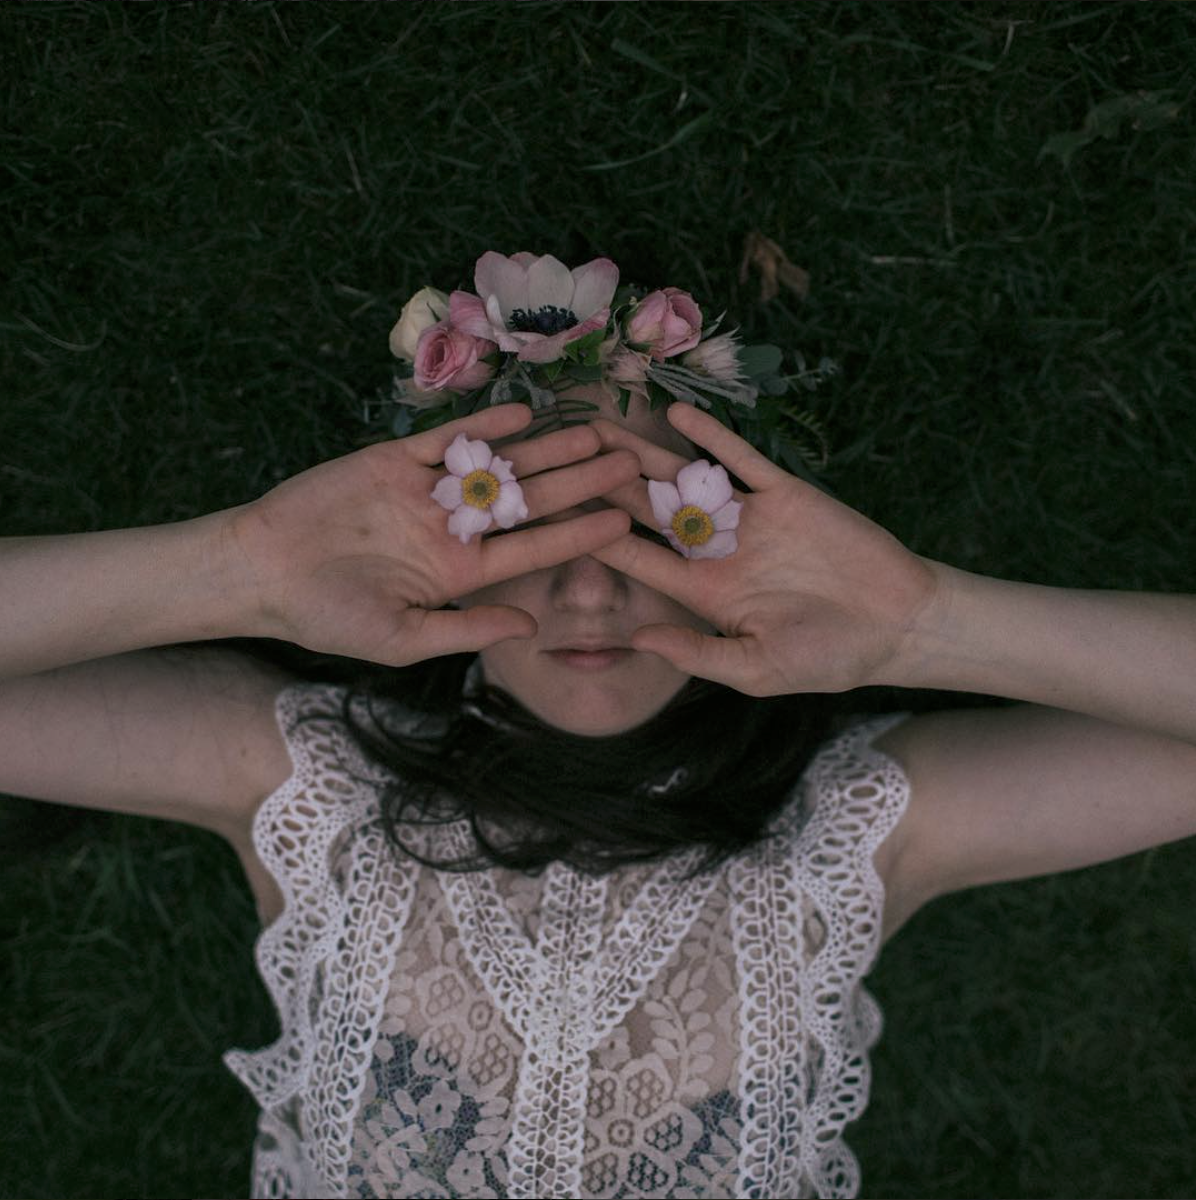 A Wildflowers Home // Bethany Folk Music // exploring womanhood // dear daughters of the earth